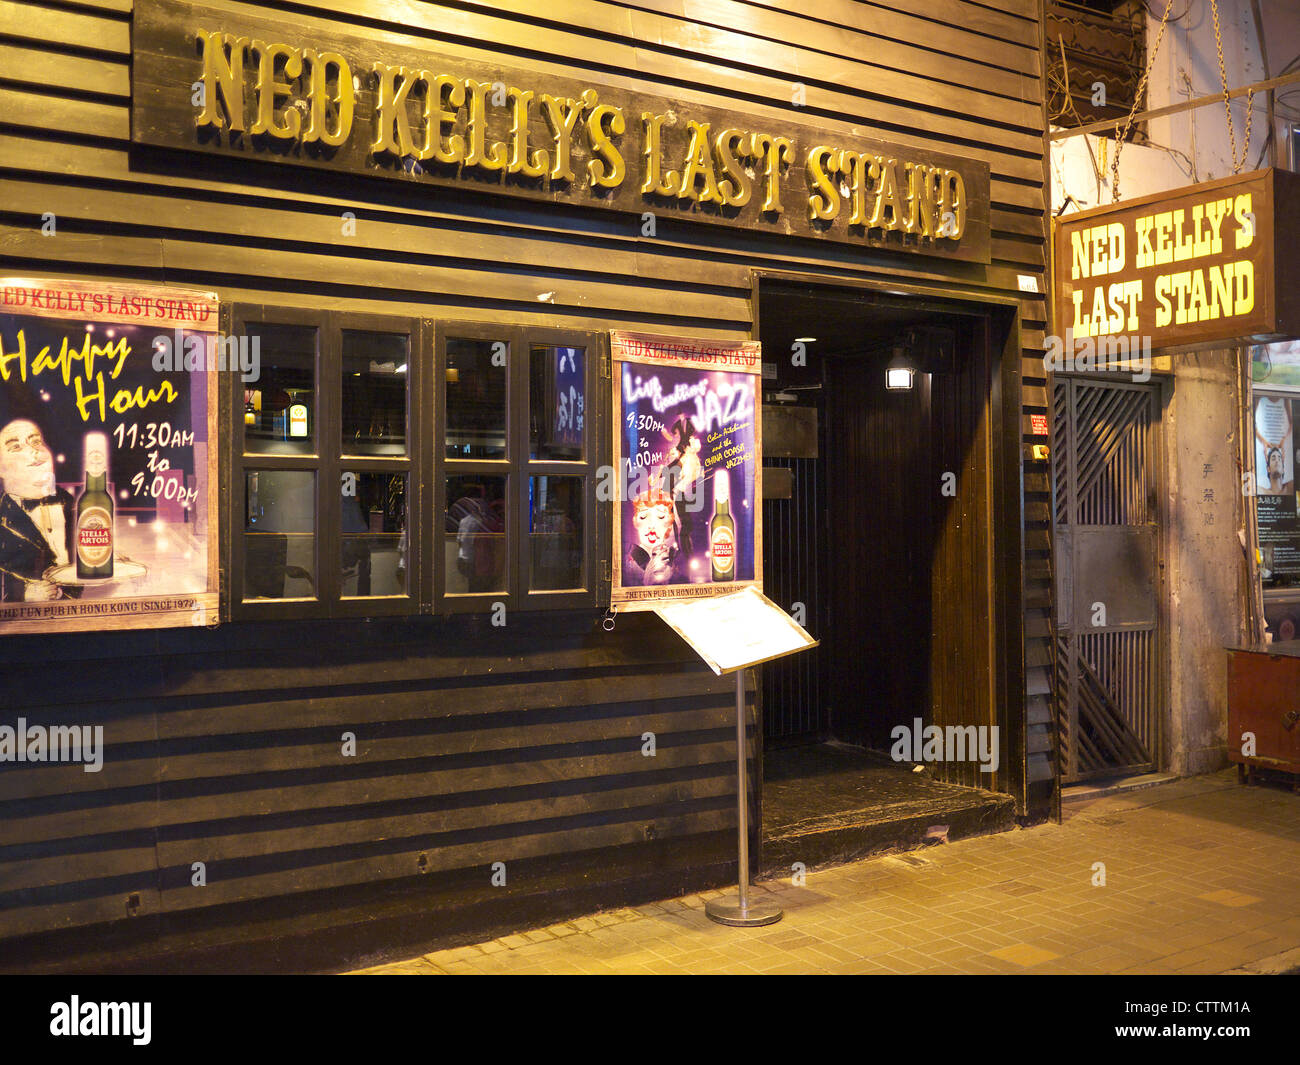 Ned Kelly's Last Stand pub in Kowloon Hong Kong - Stock Image